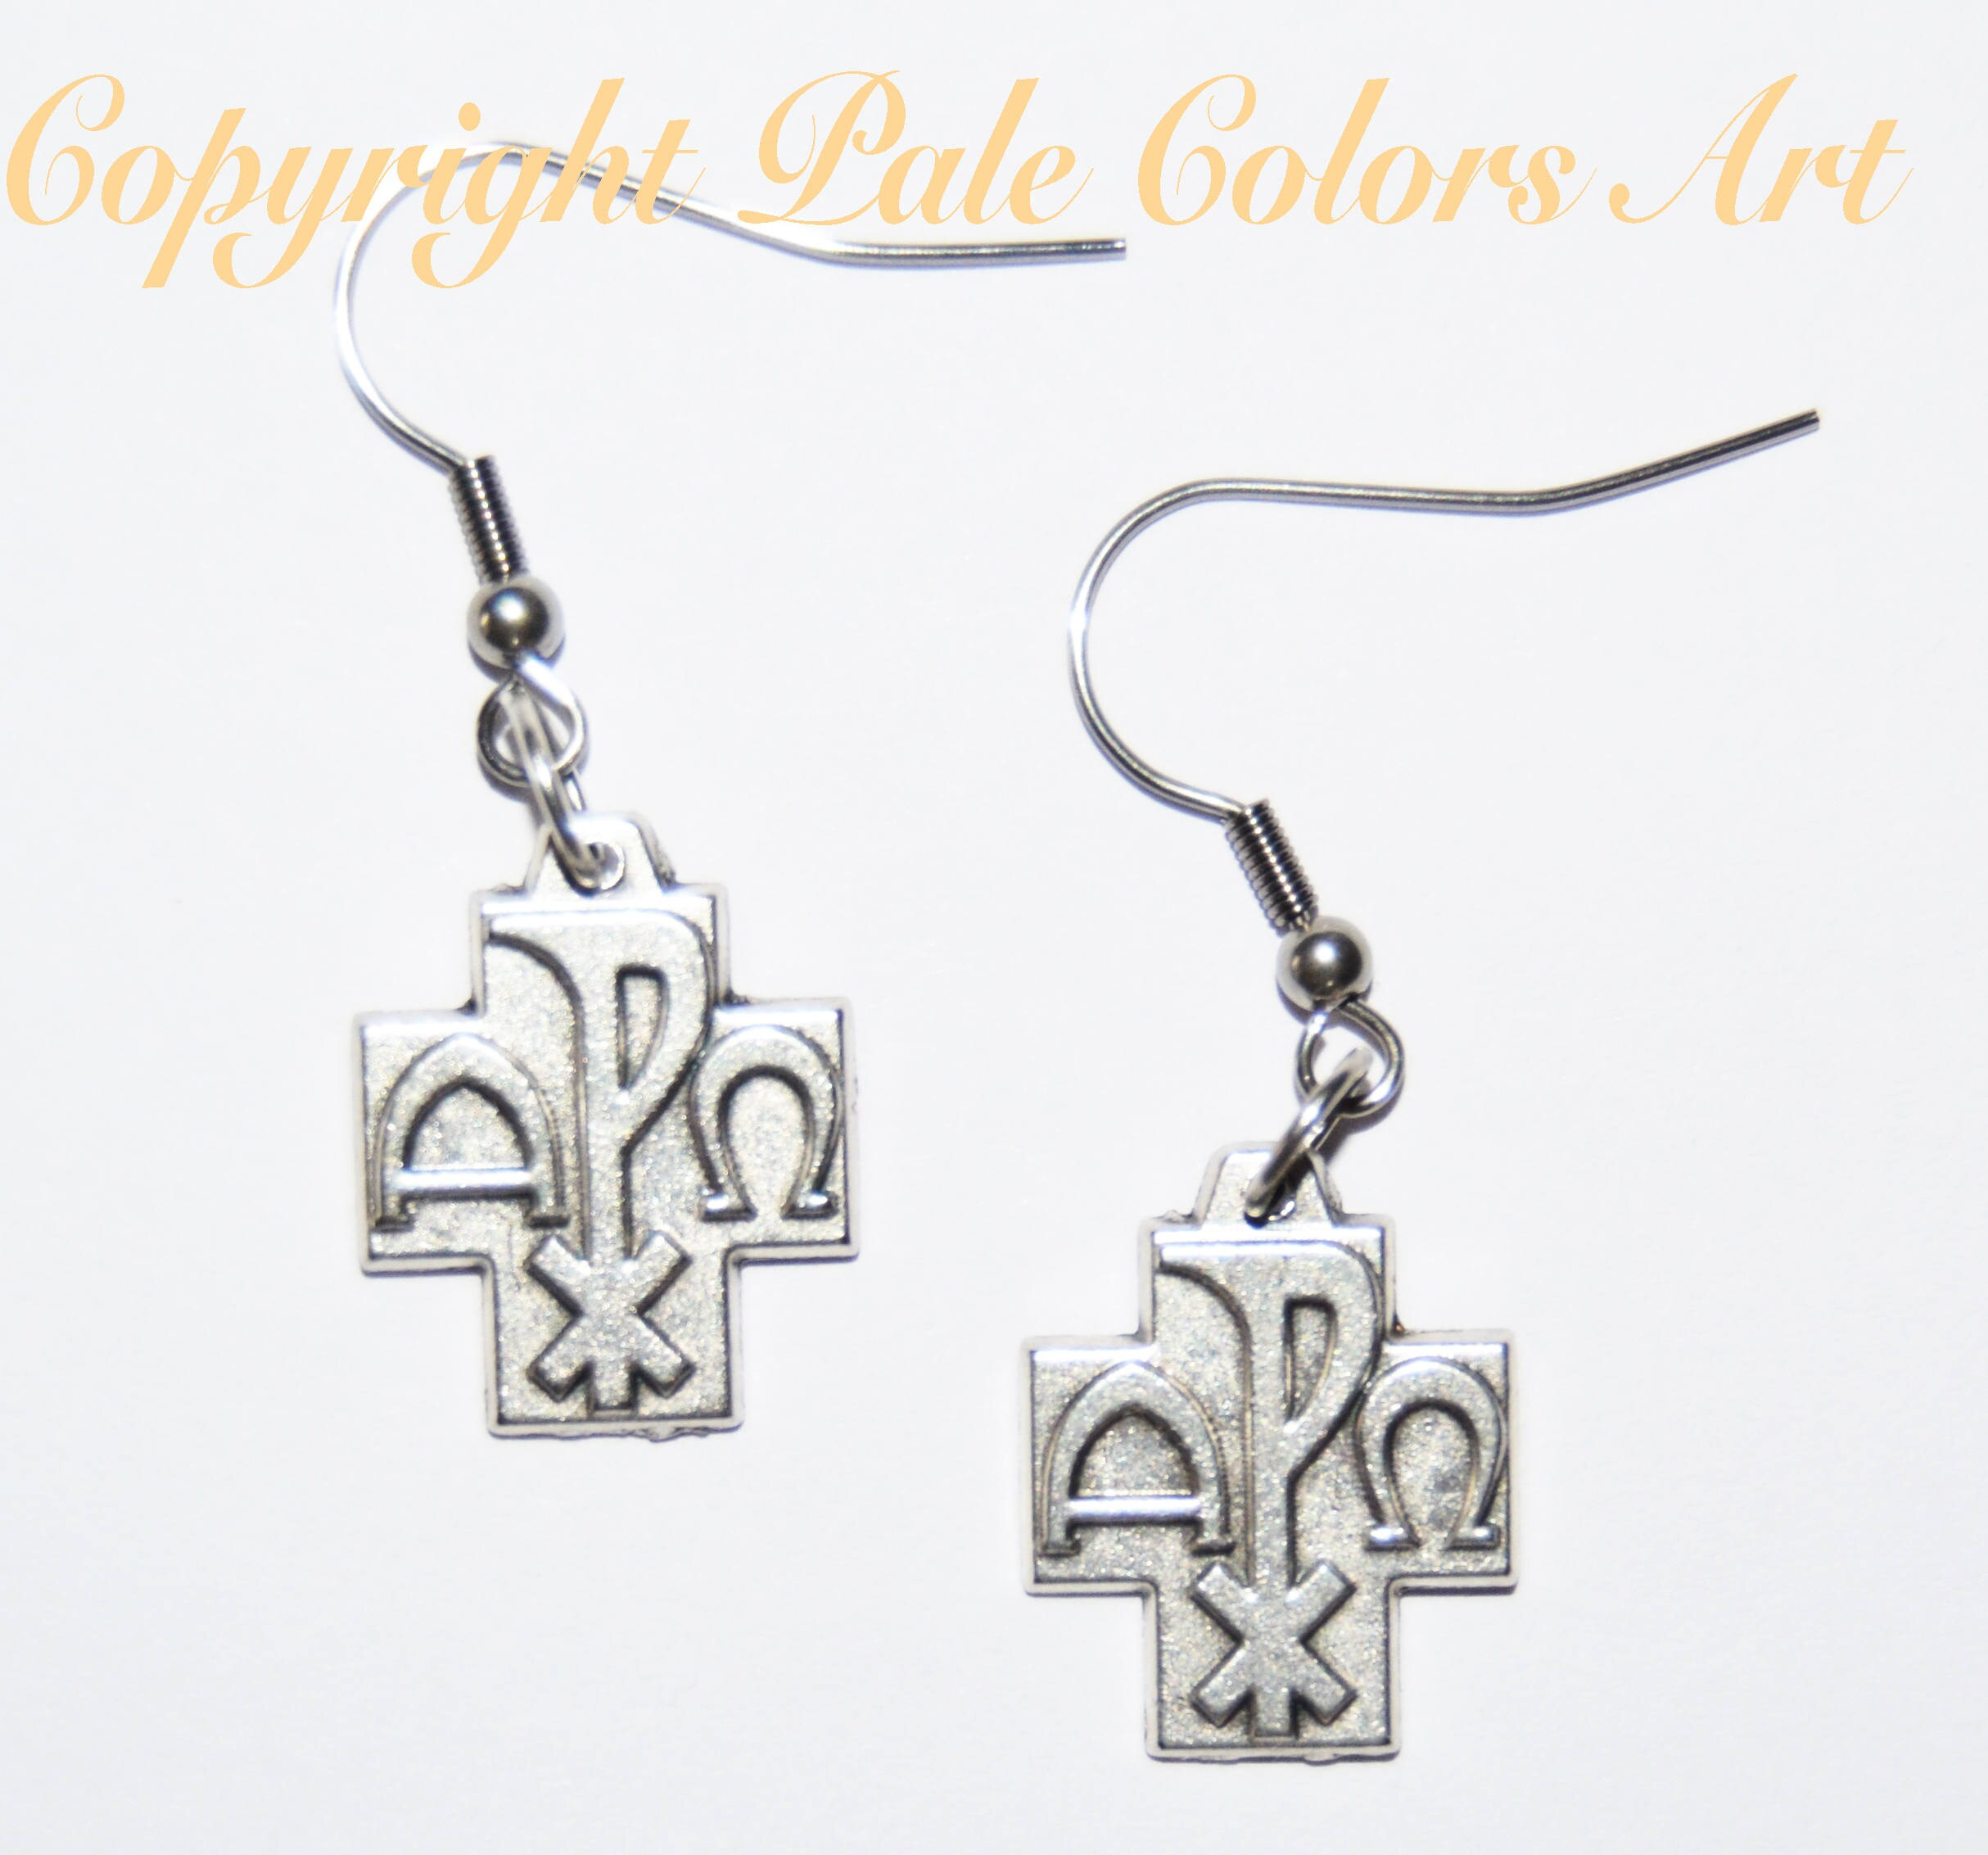 Cross earringsalpha omega earrings stainless steel cross earringsalpha omega earrings stainless steel hypoallergenic non tarnish ear wiresgreek symbols alpha omega earringscross earrings buycottarizona